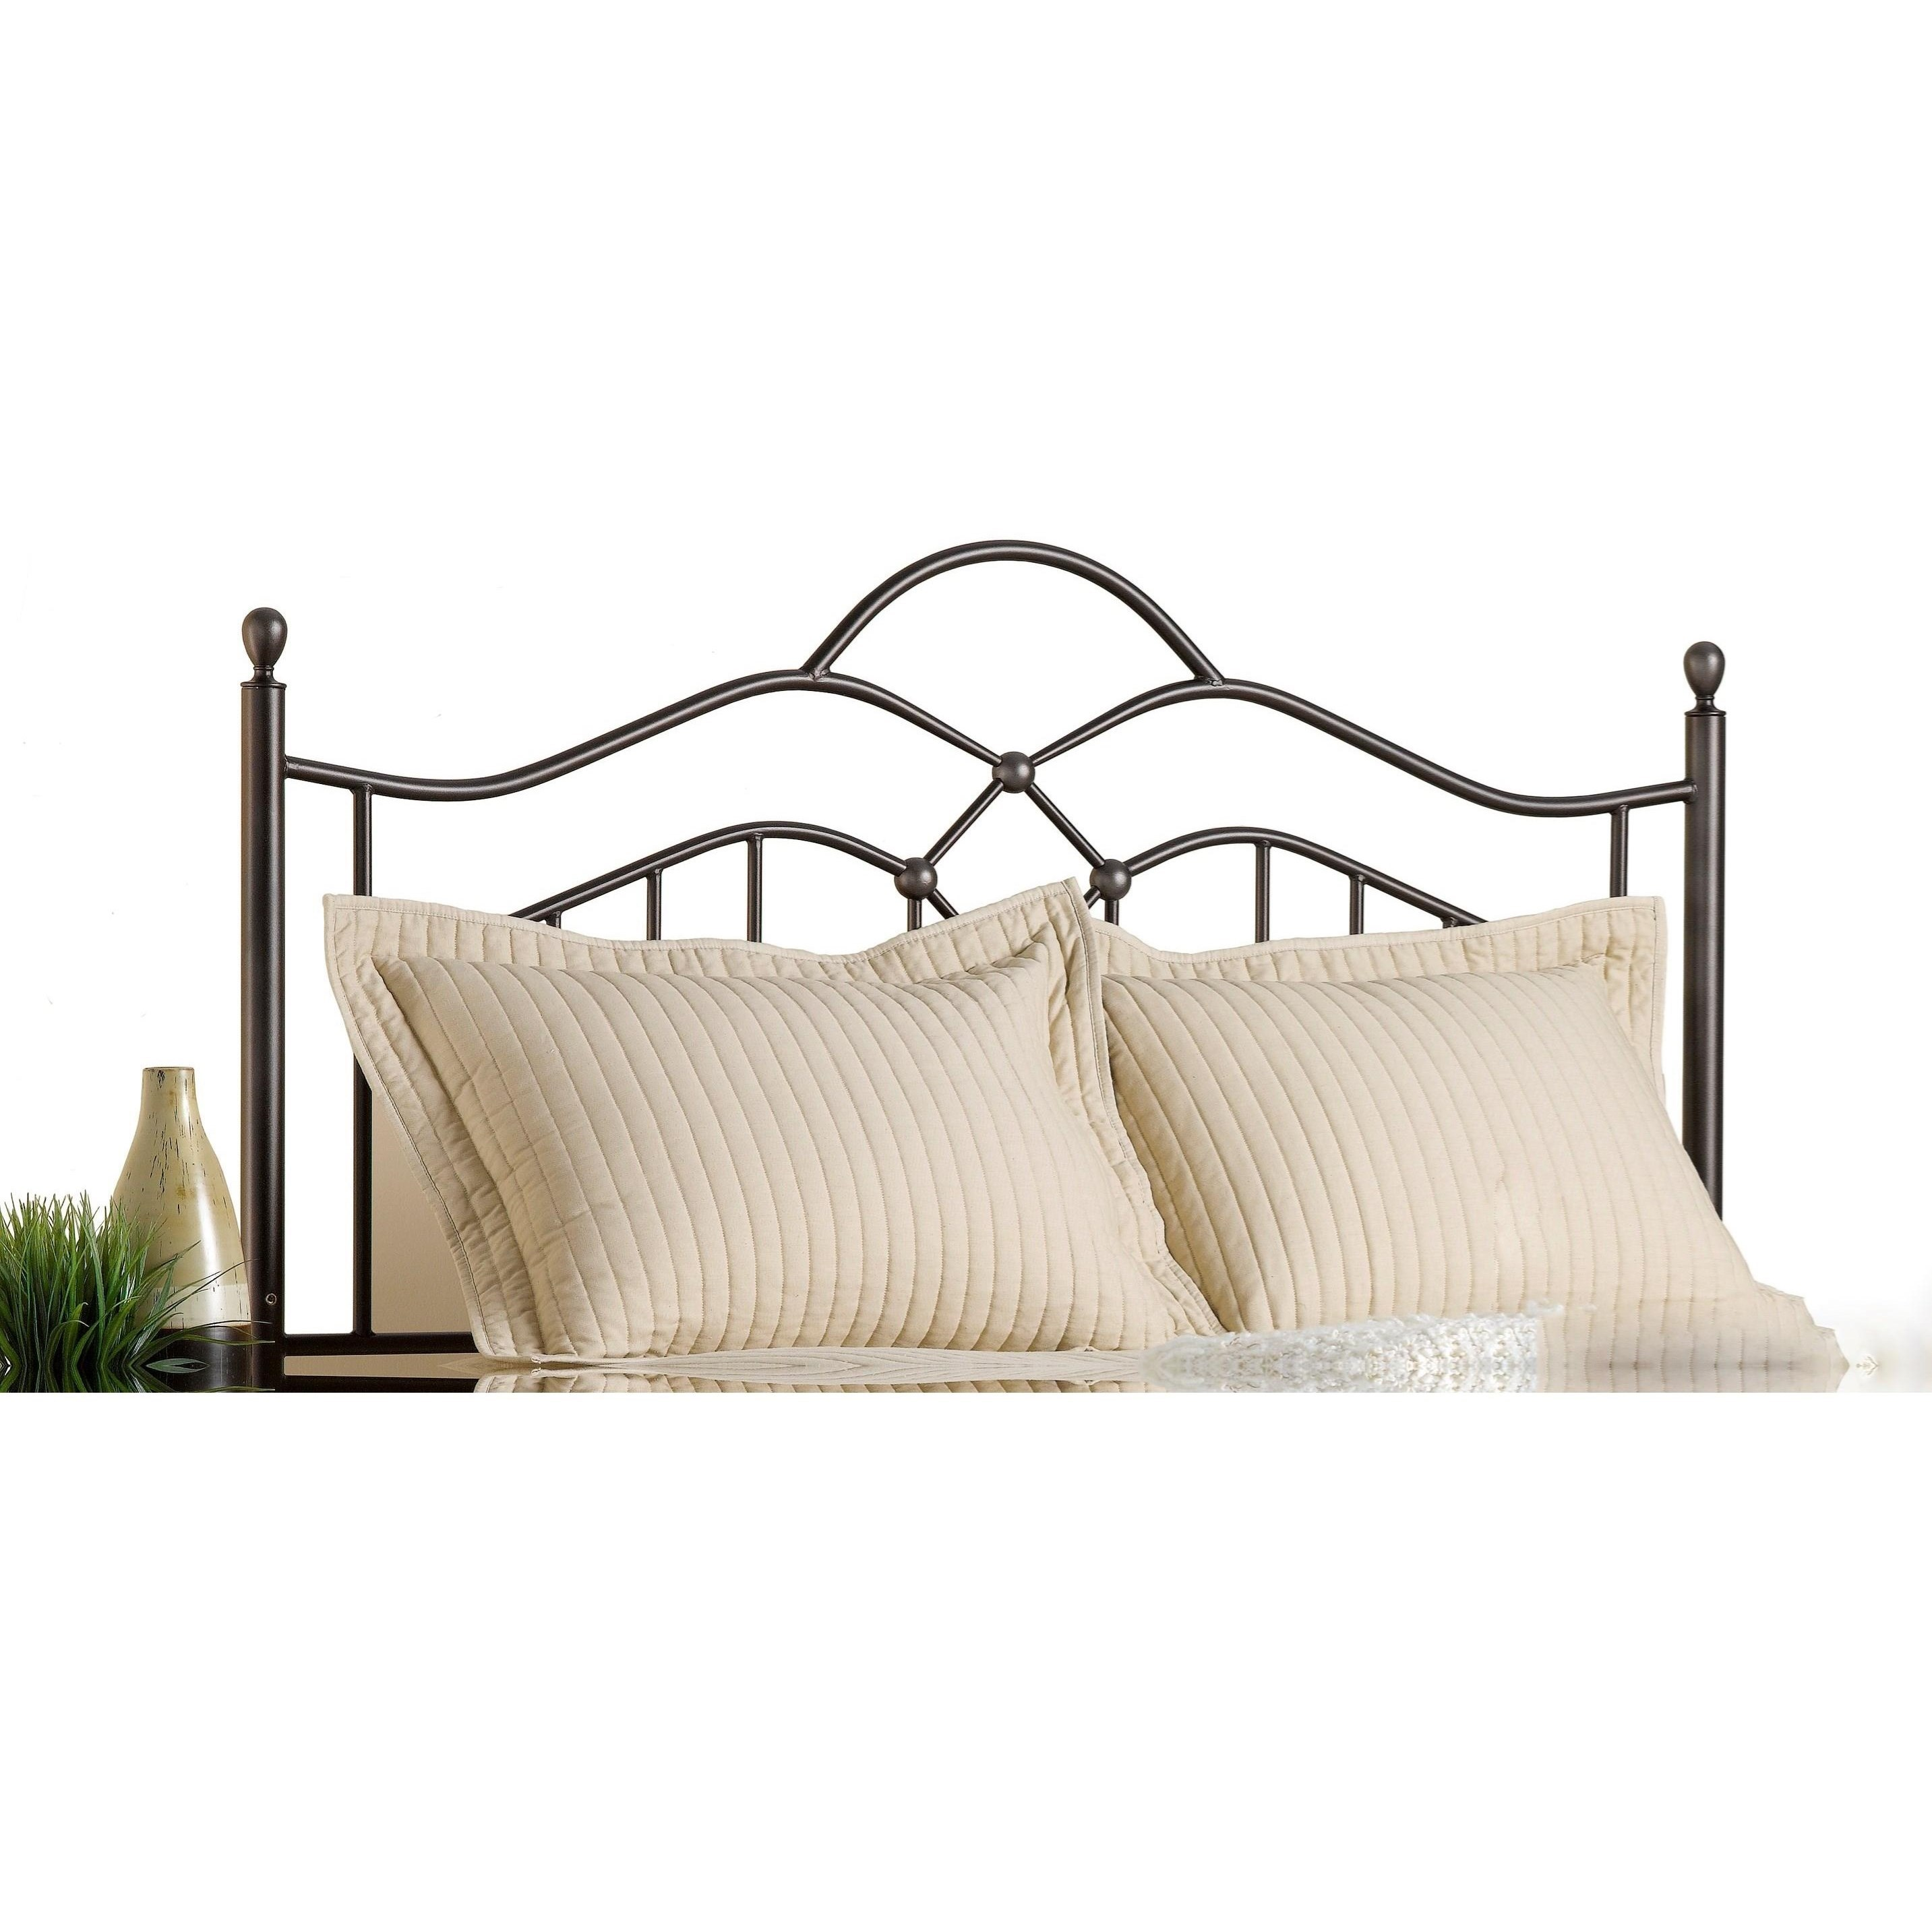 Metal Beds King Oklahoma Headboard by Hillsdale at A1 Furniture & Mattress